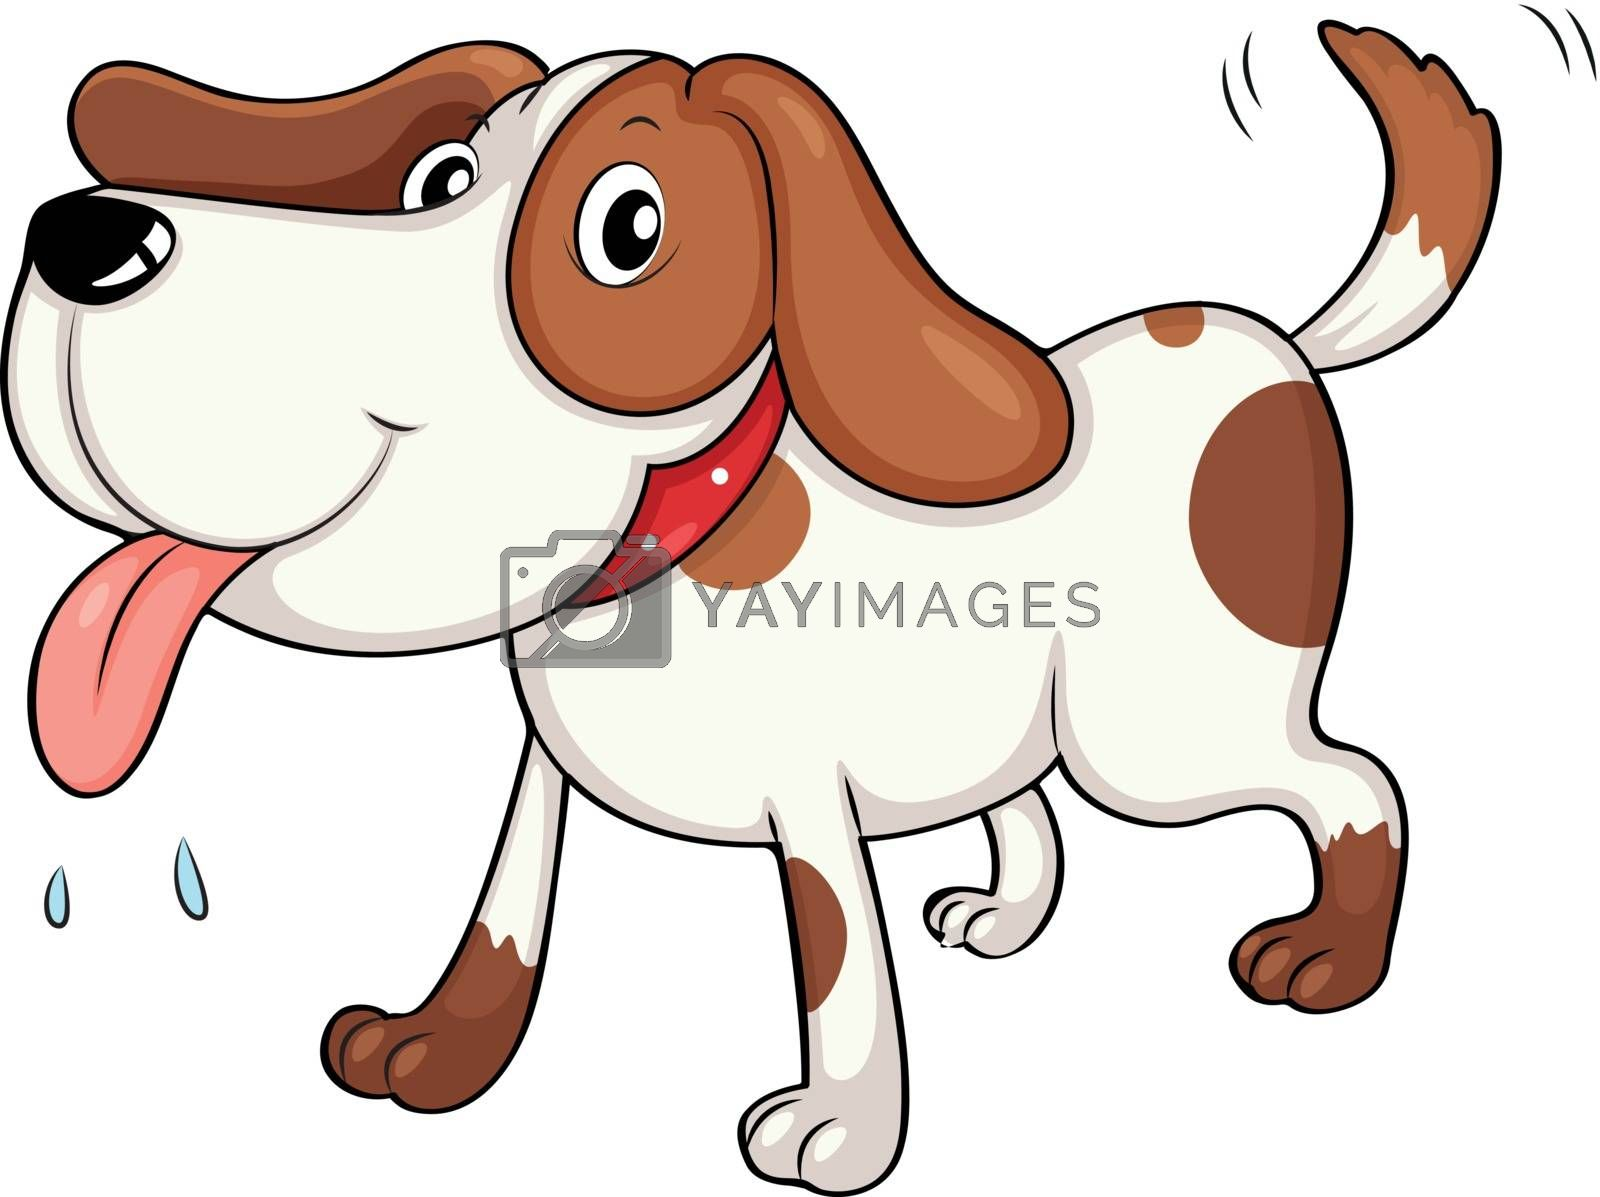 Illustration of a tired young dog on a white background